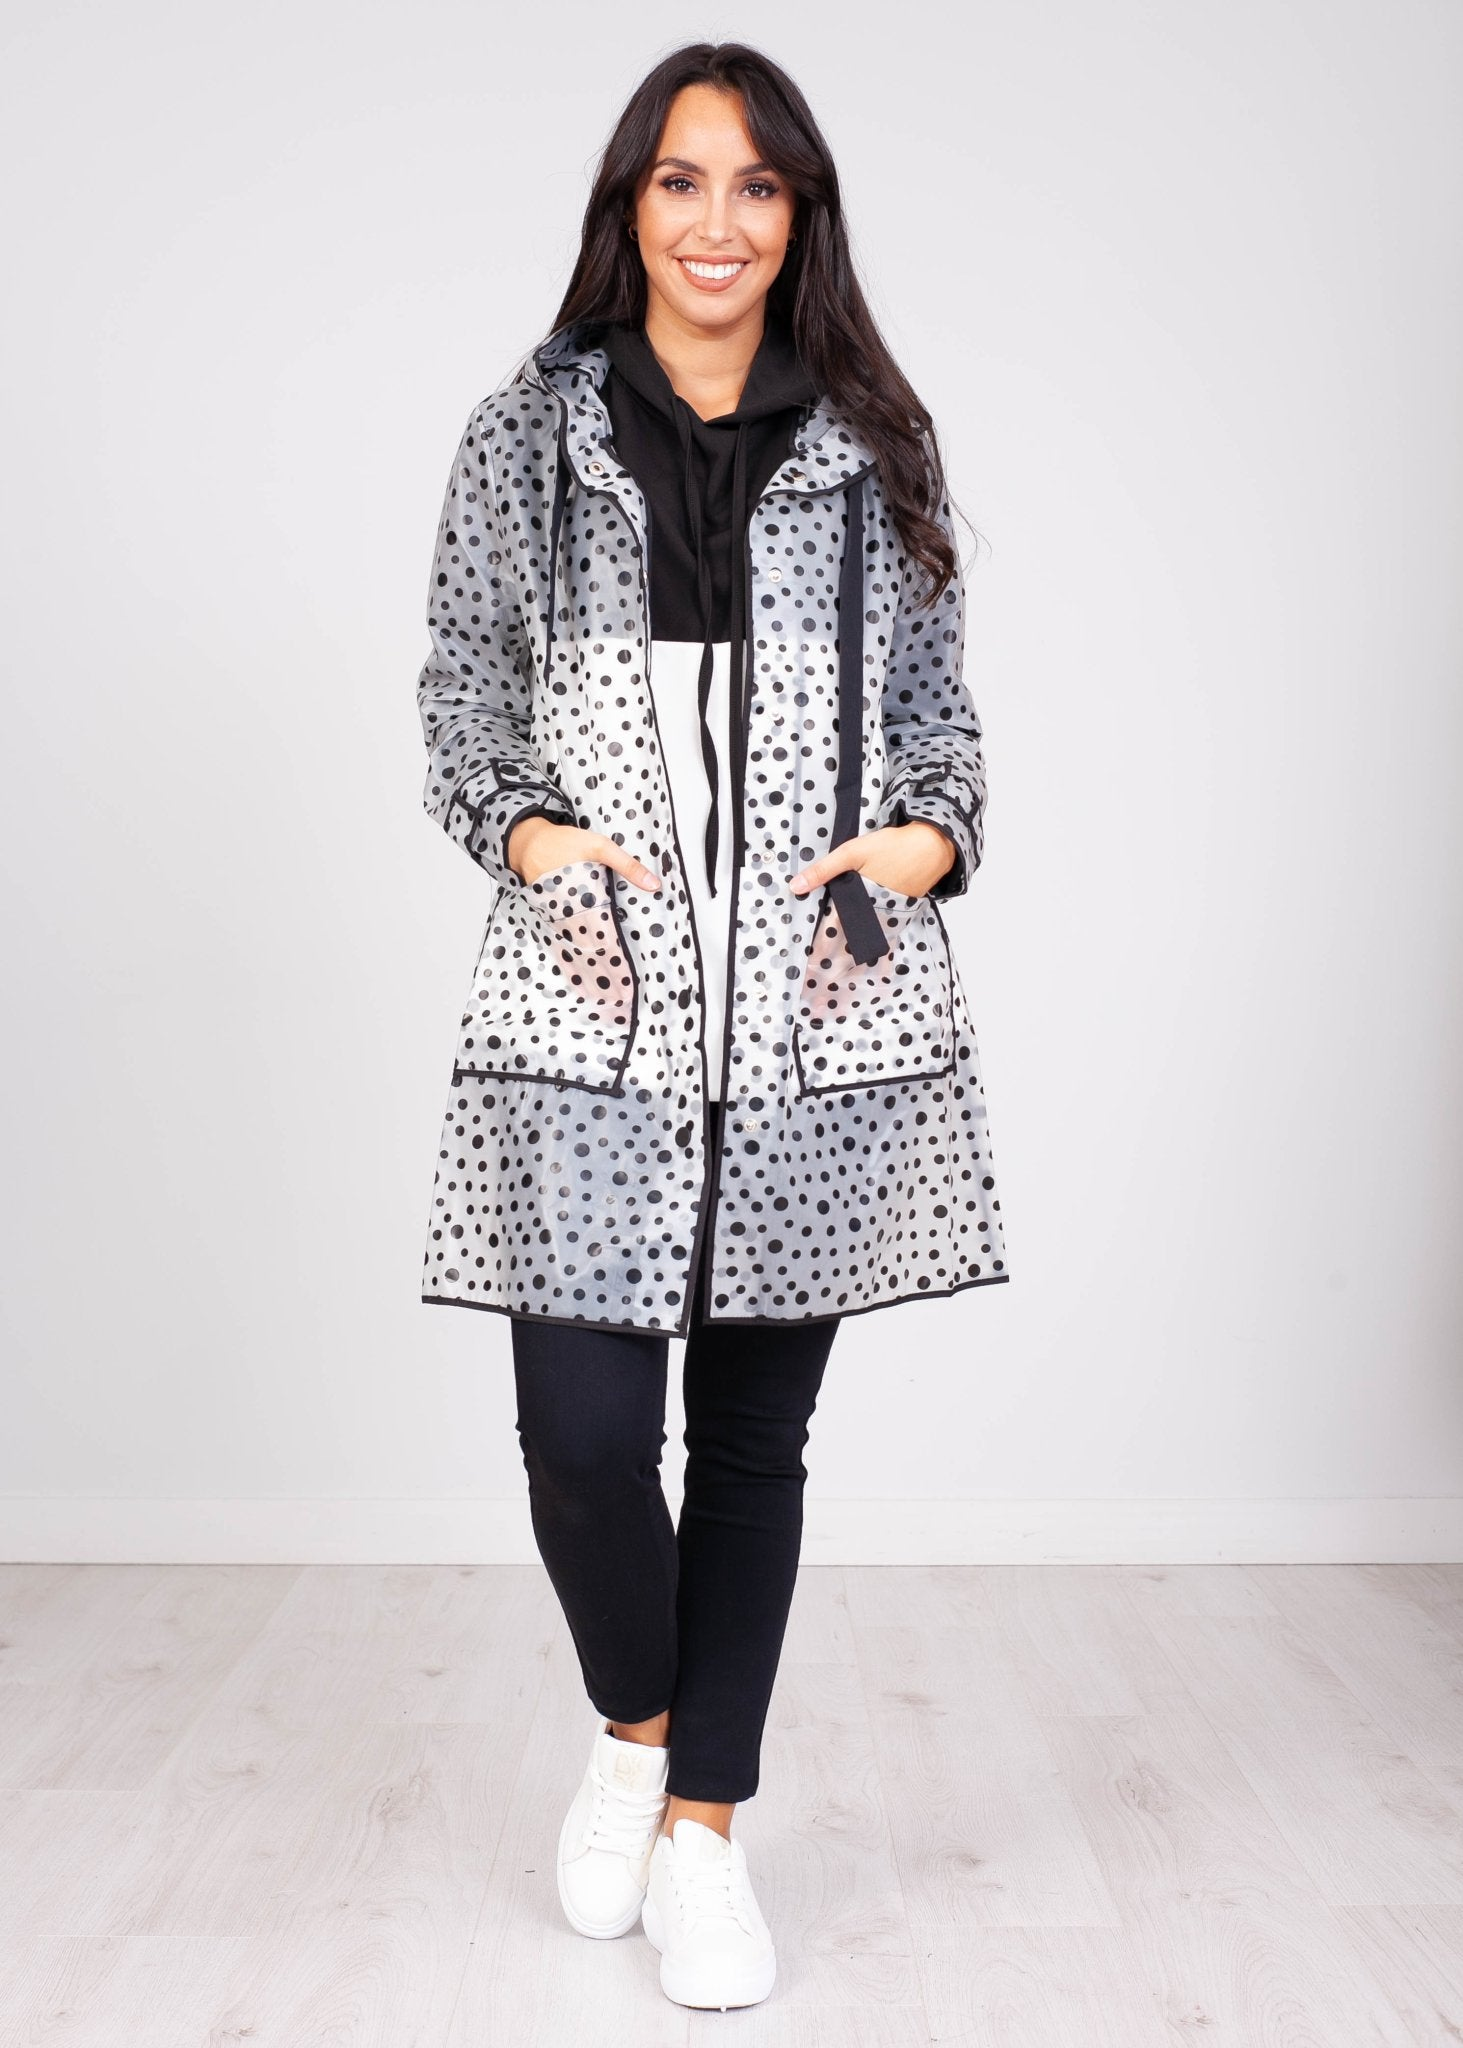 Priya Polka Dot Raincoat - The Walk in Wardrobe